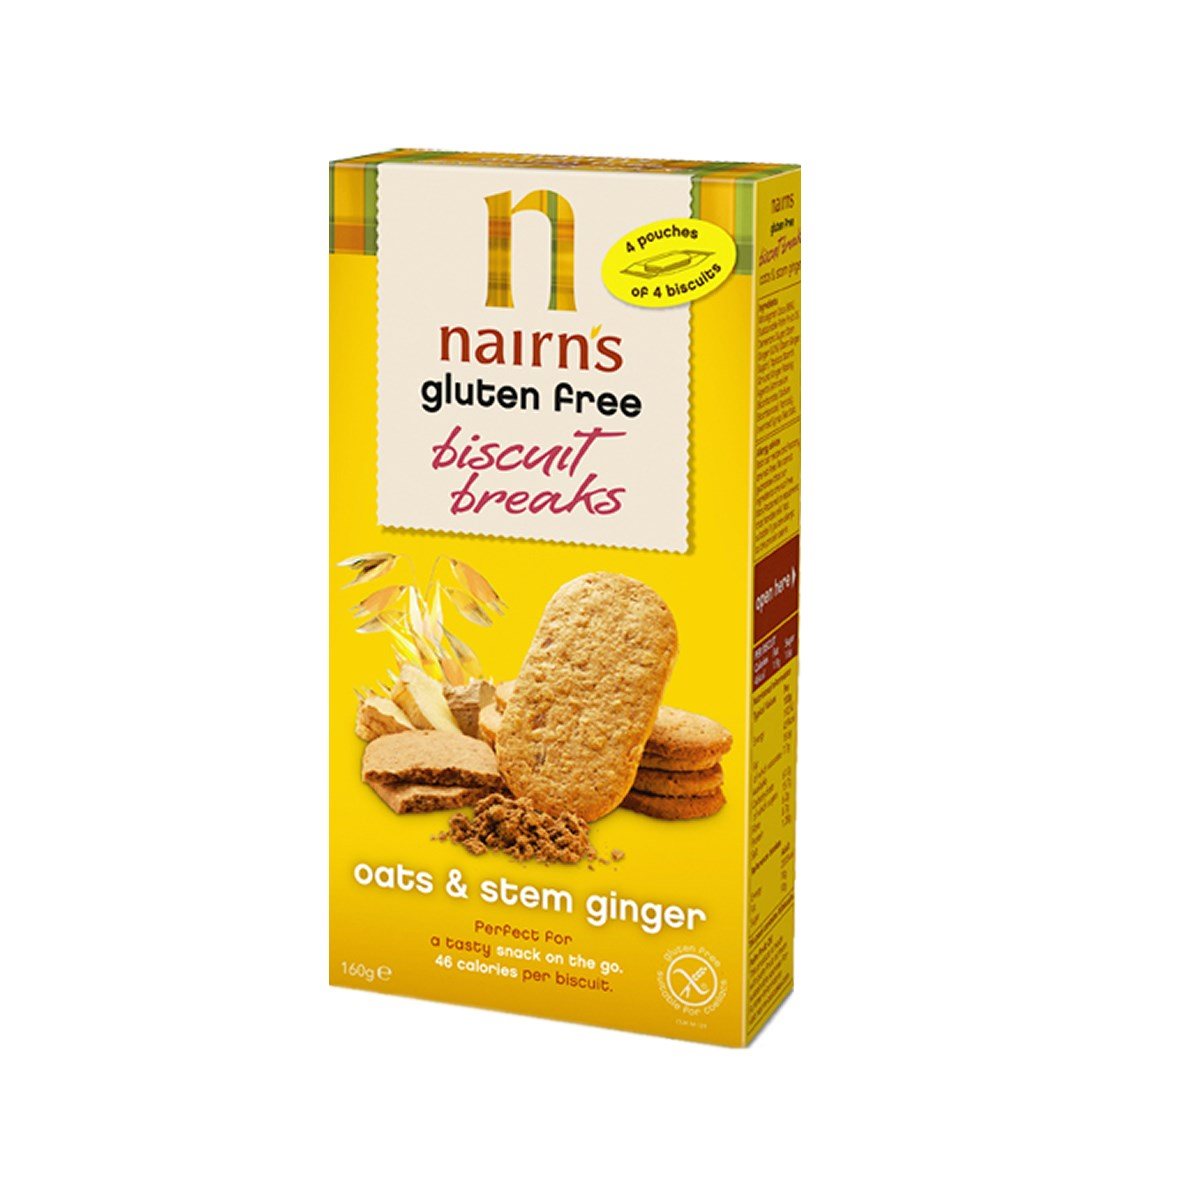 Nairn's Gluten Free Oats & Stem Ginger Biscuit Breaks